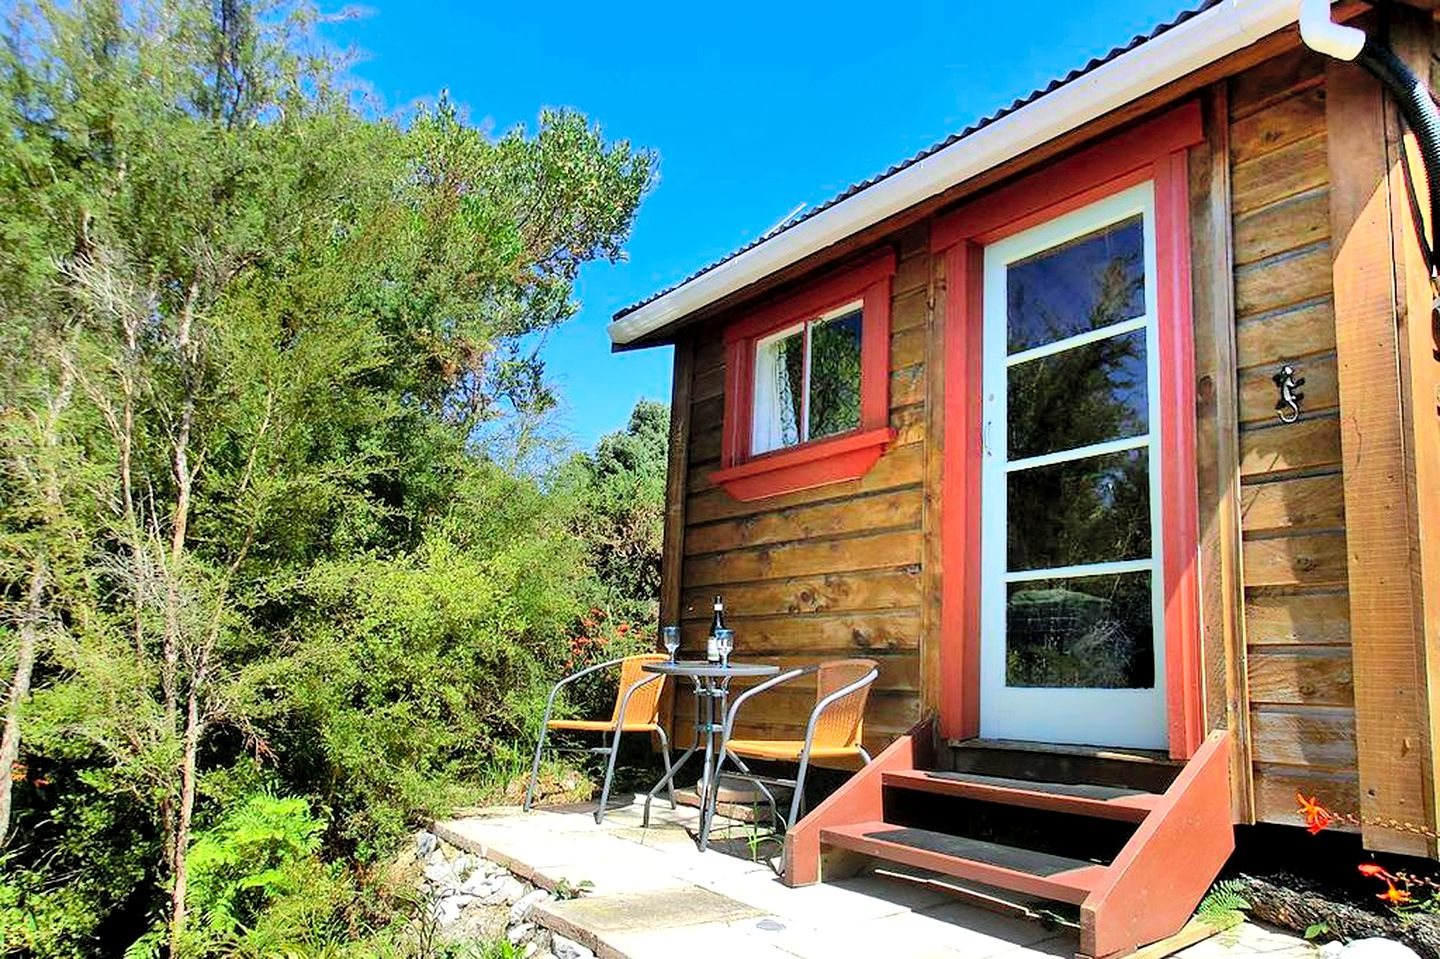 This Golden Bay rental is ideal for romantic getaways, South Island